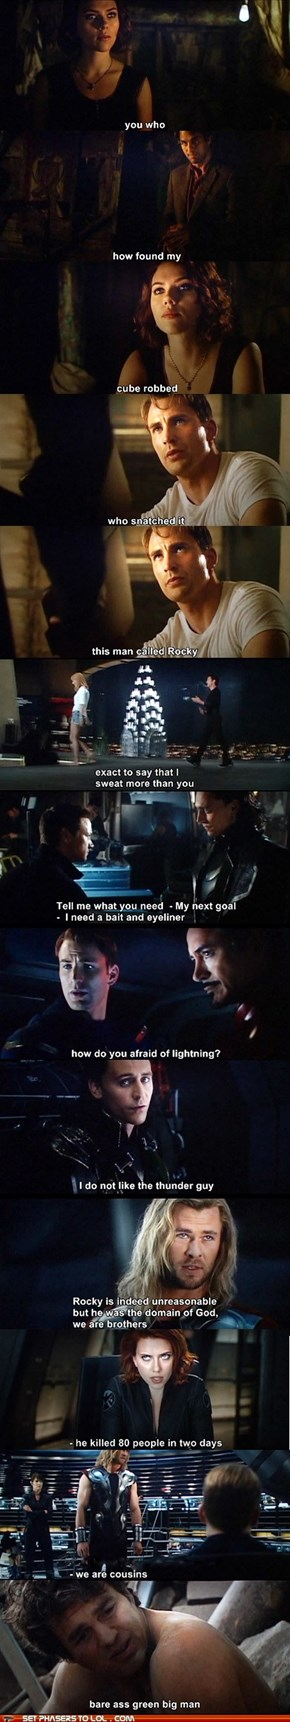 "Chinese Bootleg Copy of ""The Avengers"" has Hilarious Subtitles"